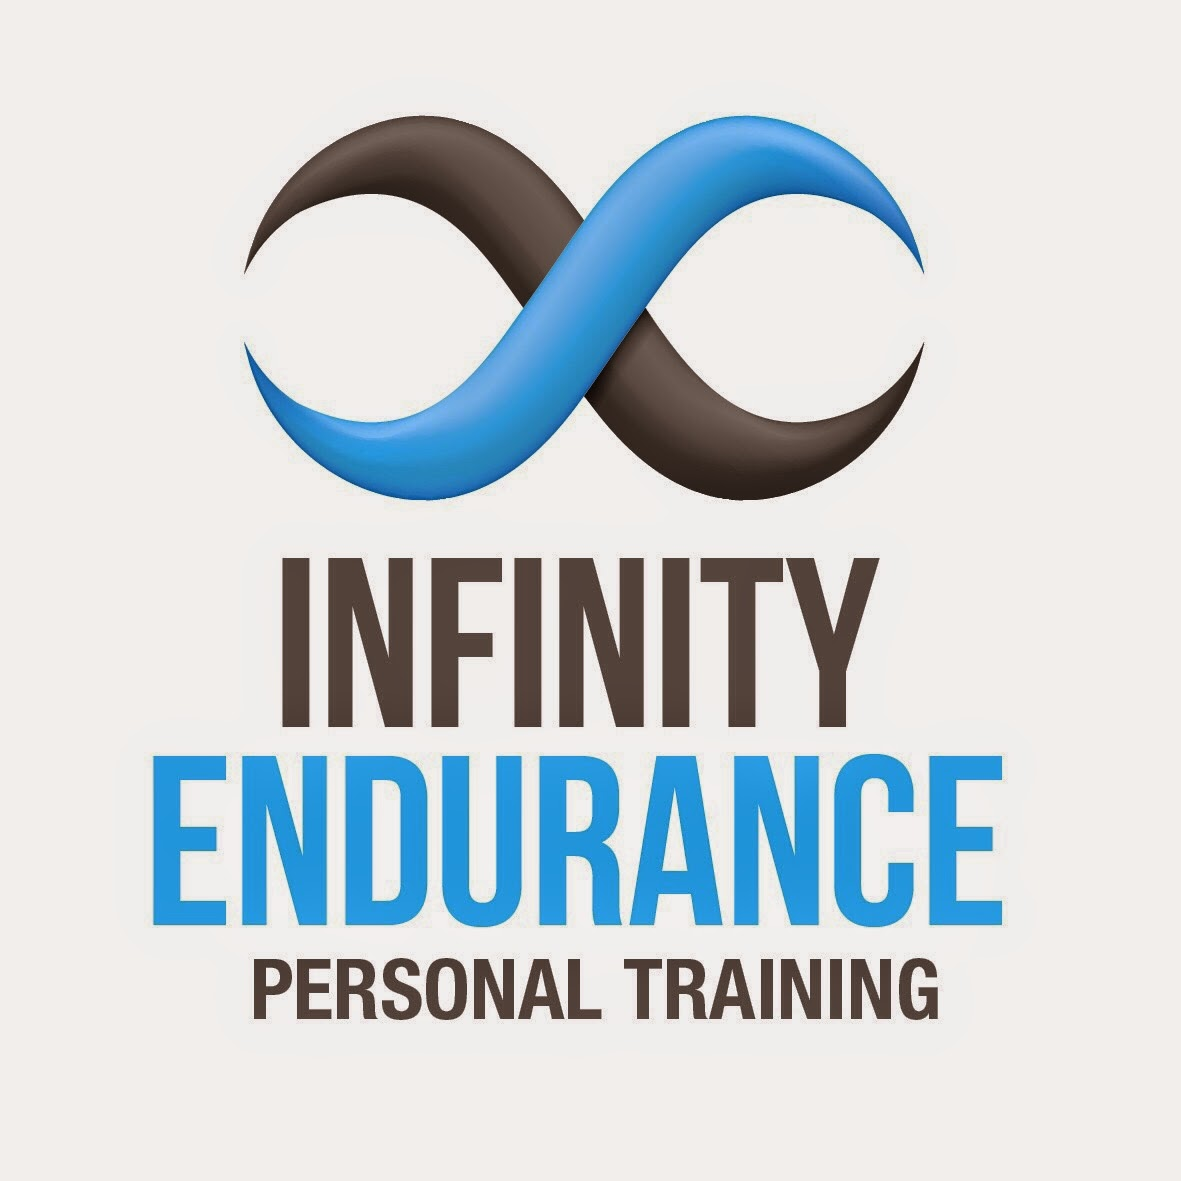 InfinityEndurance Training